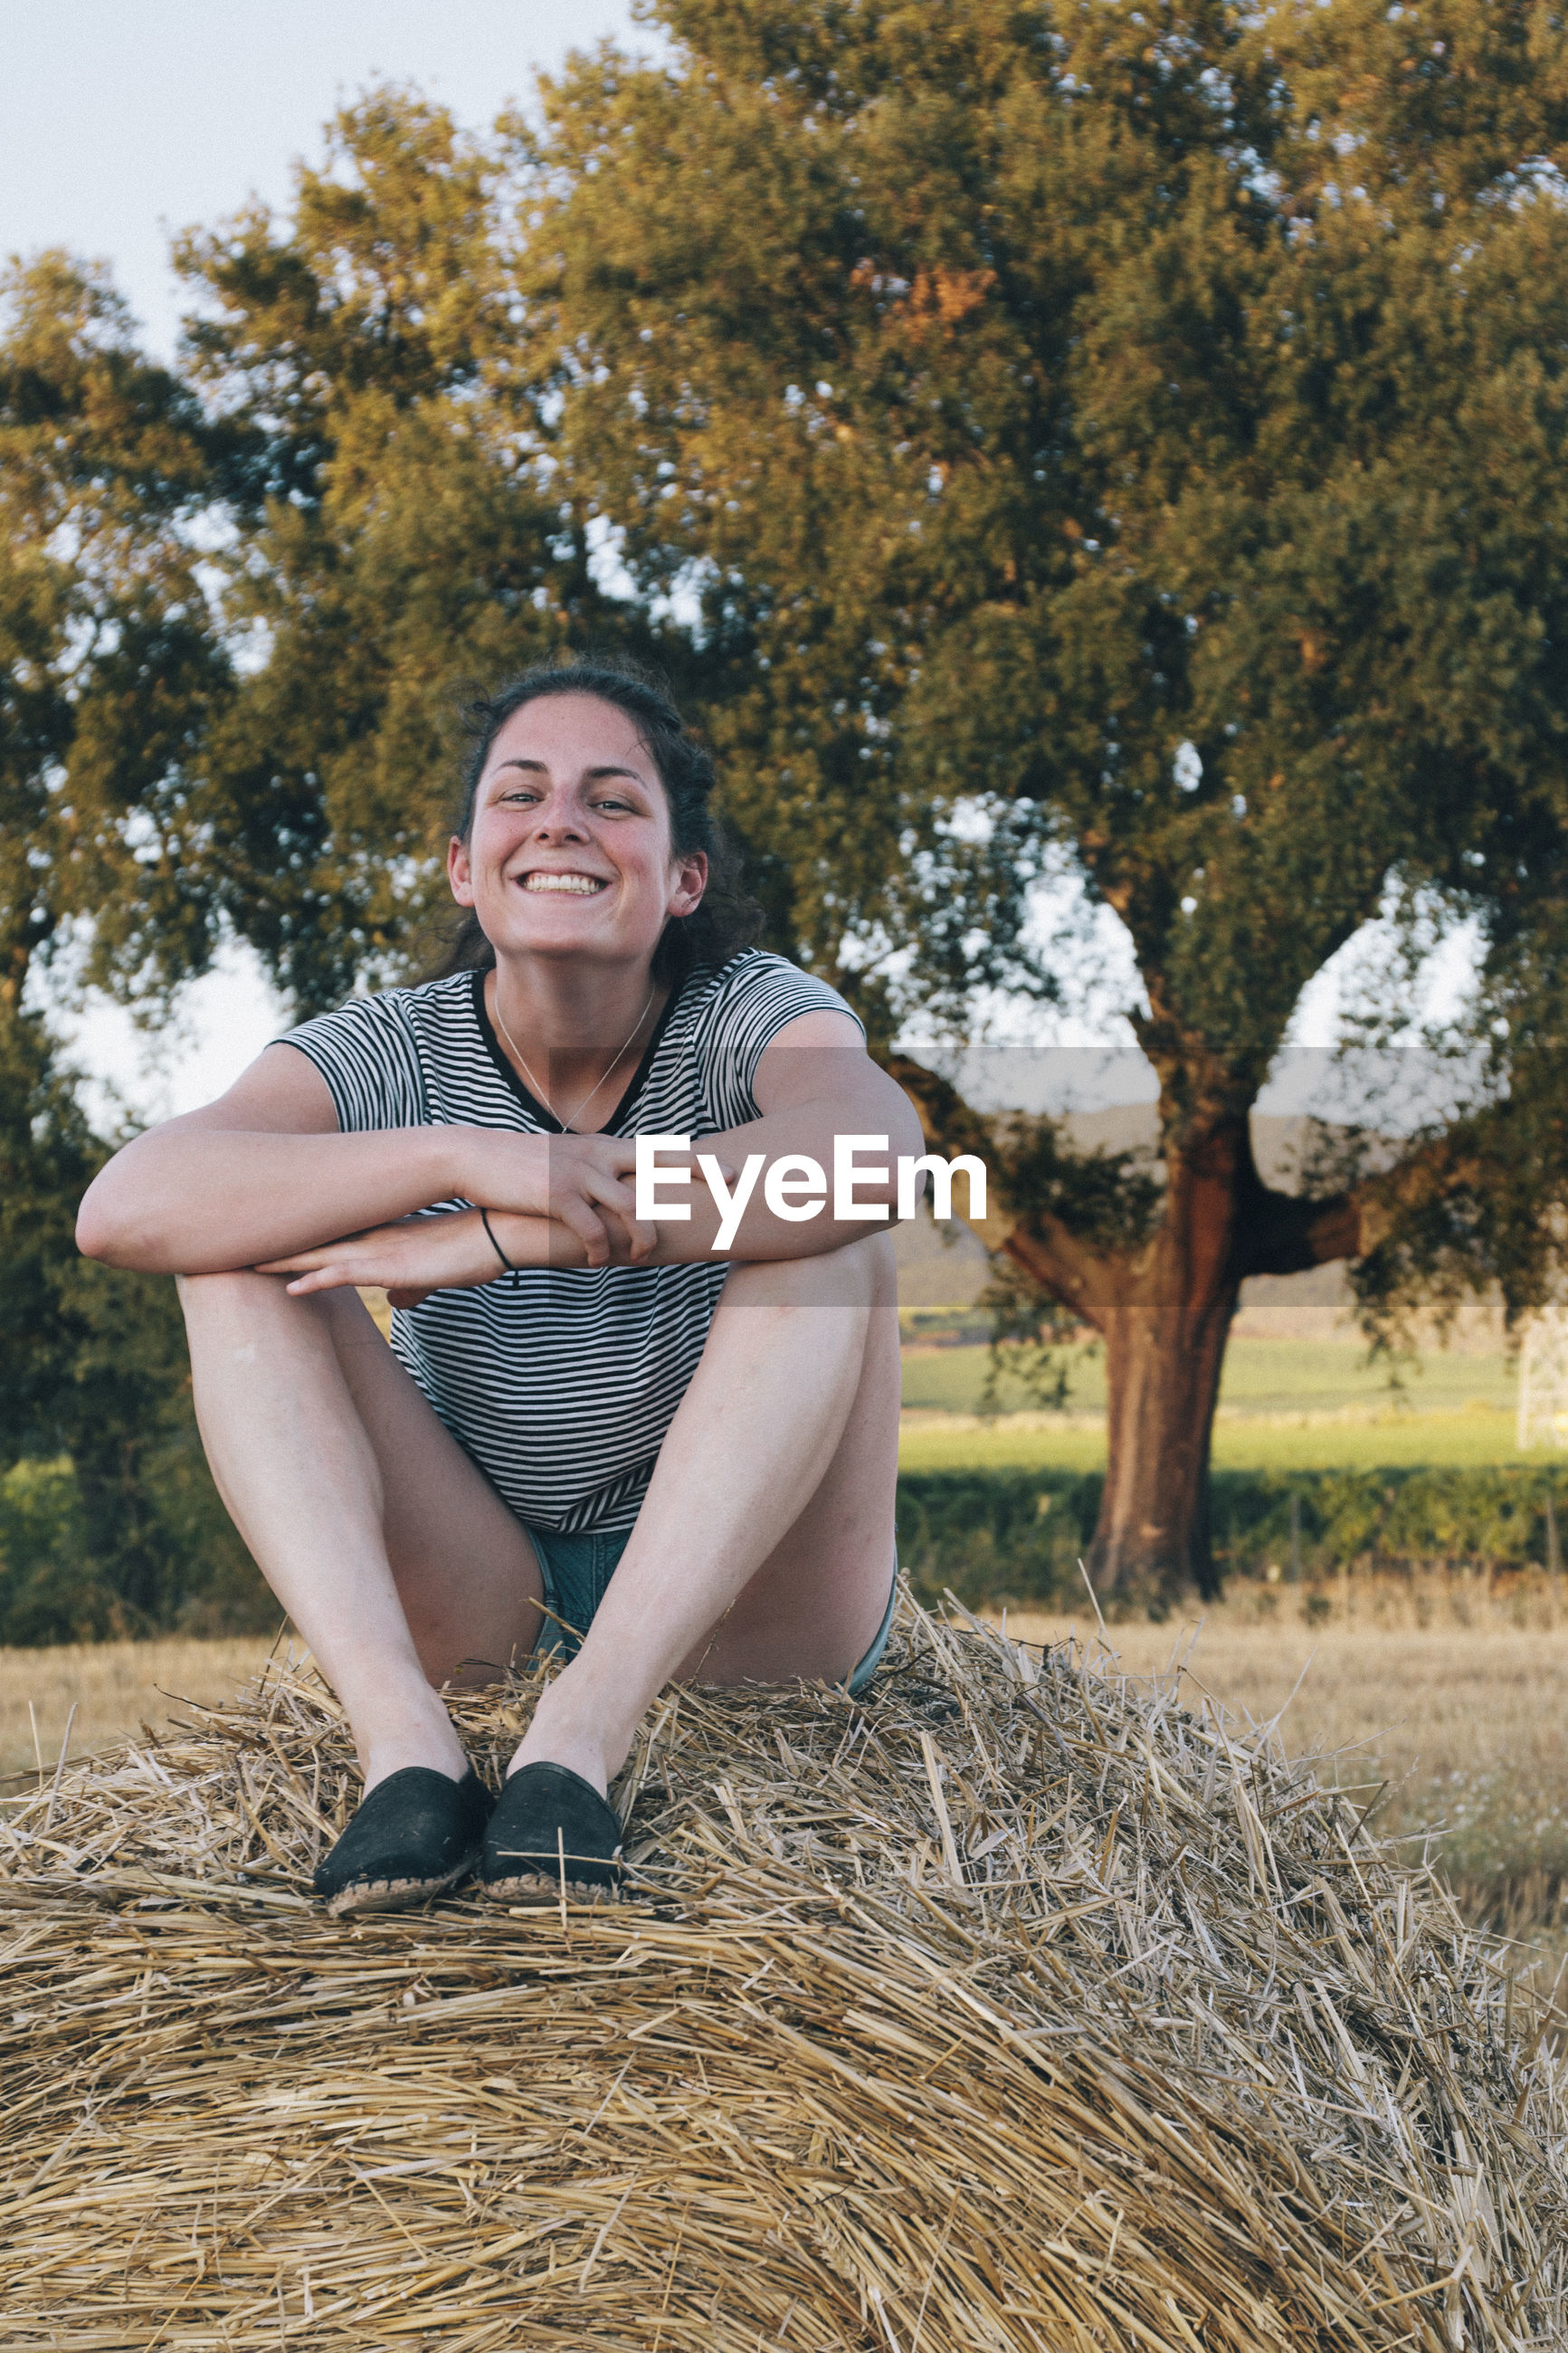 Young woman smiling wide atop a bale of hay on a farm